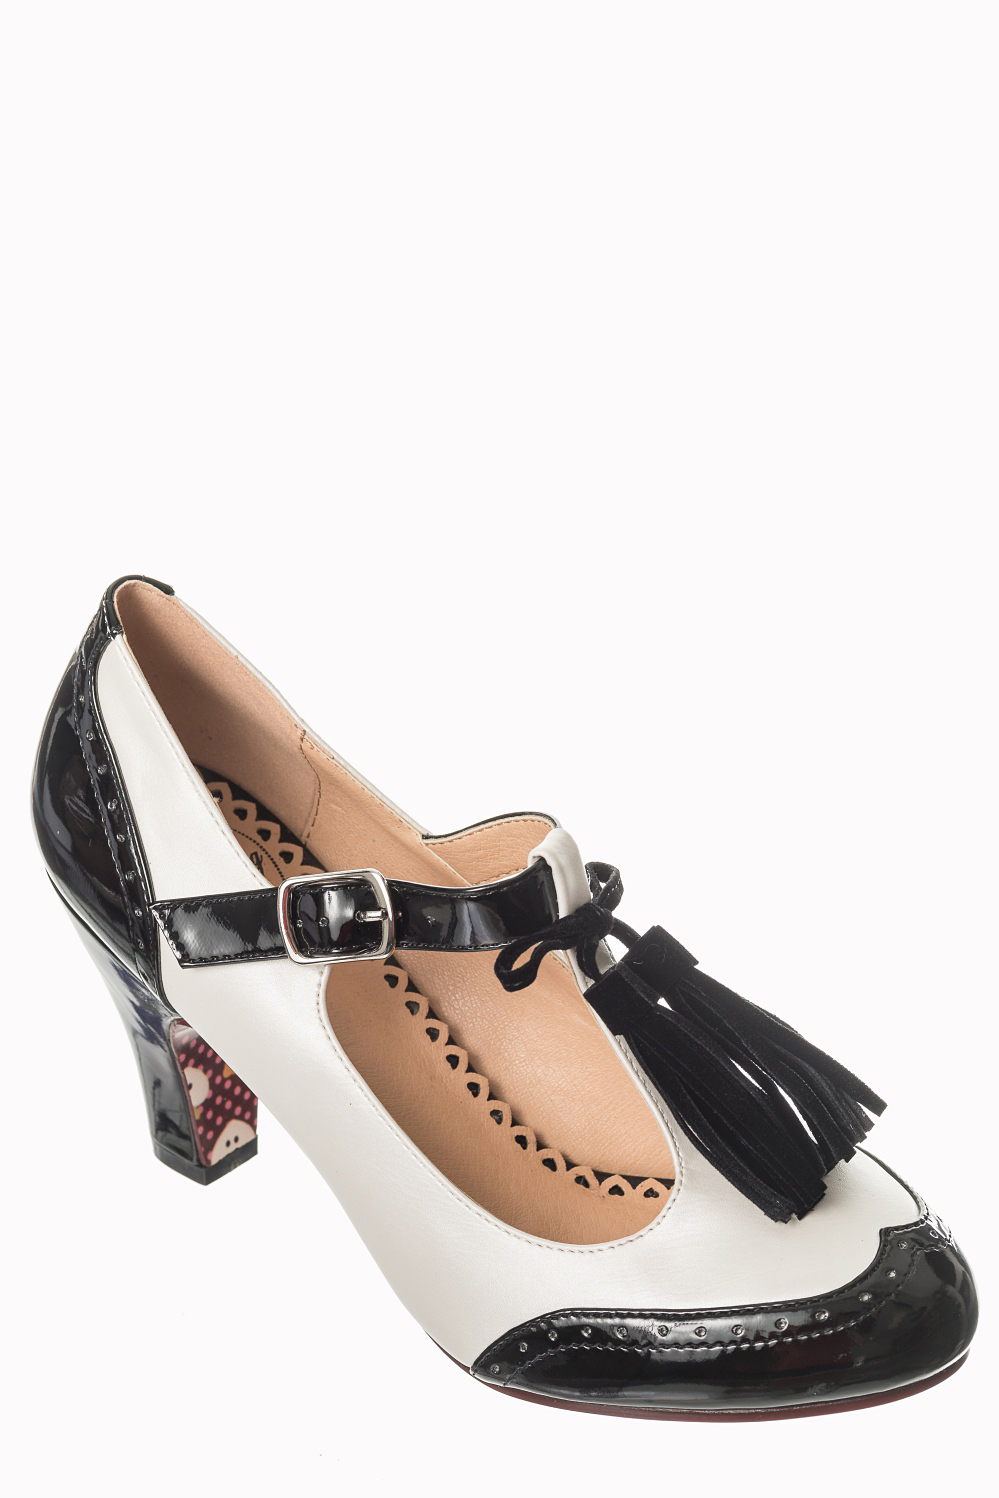 Dancing Days Baby Loves That Way 60s Brogue Monochrome Shoes